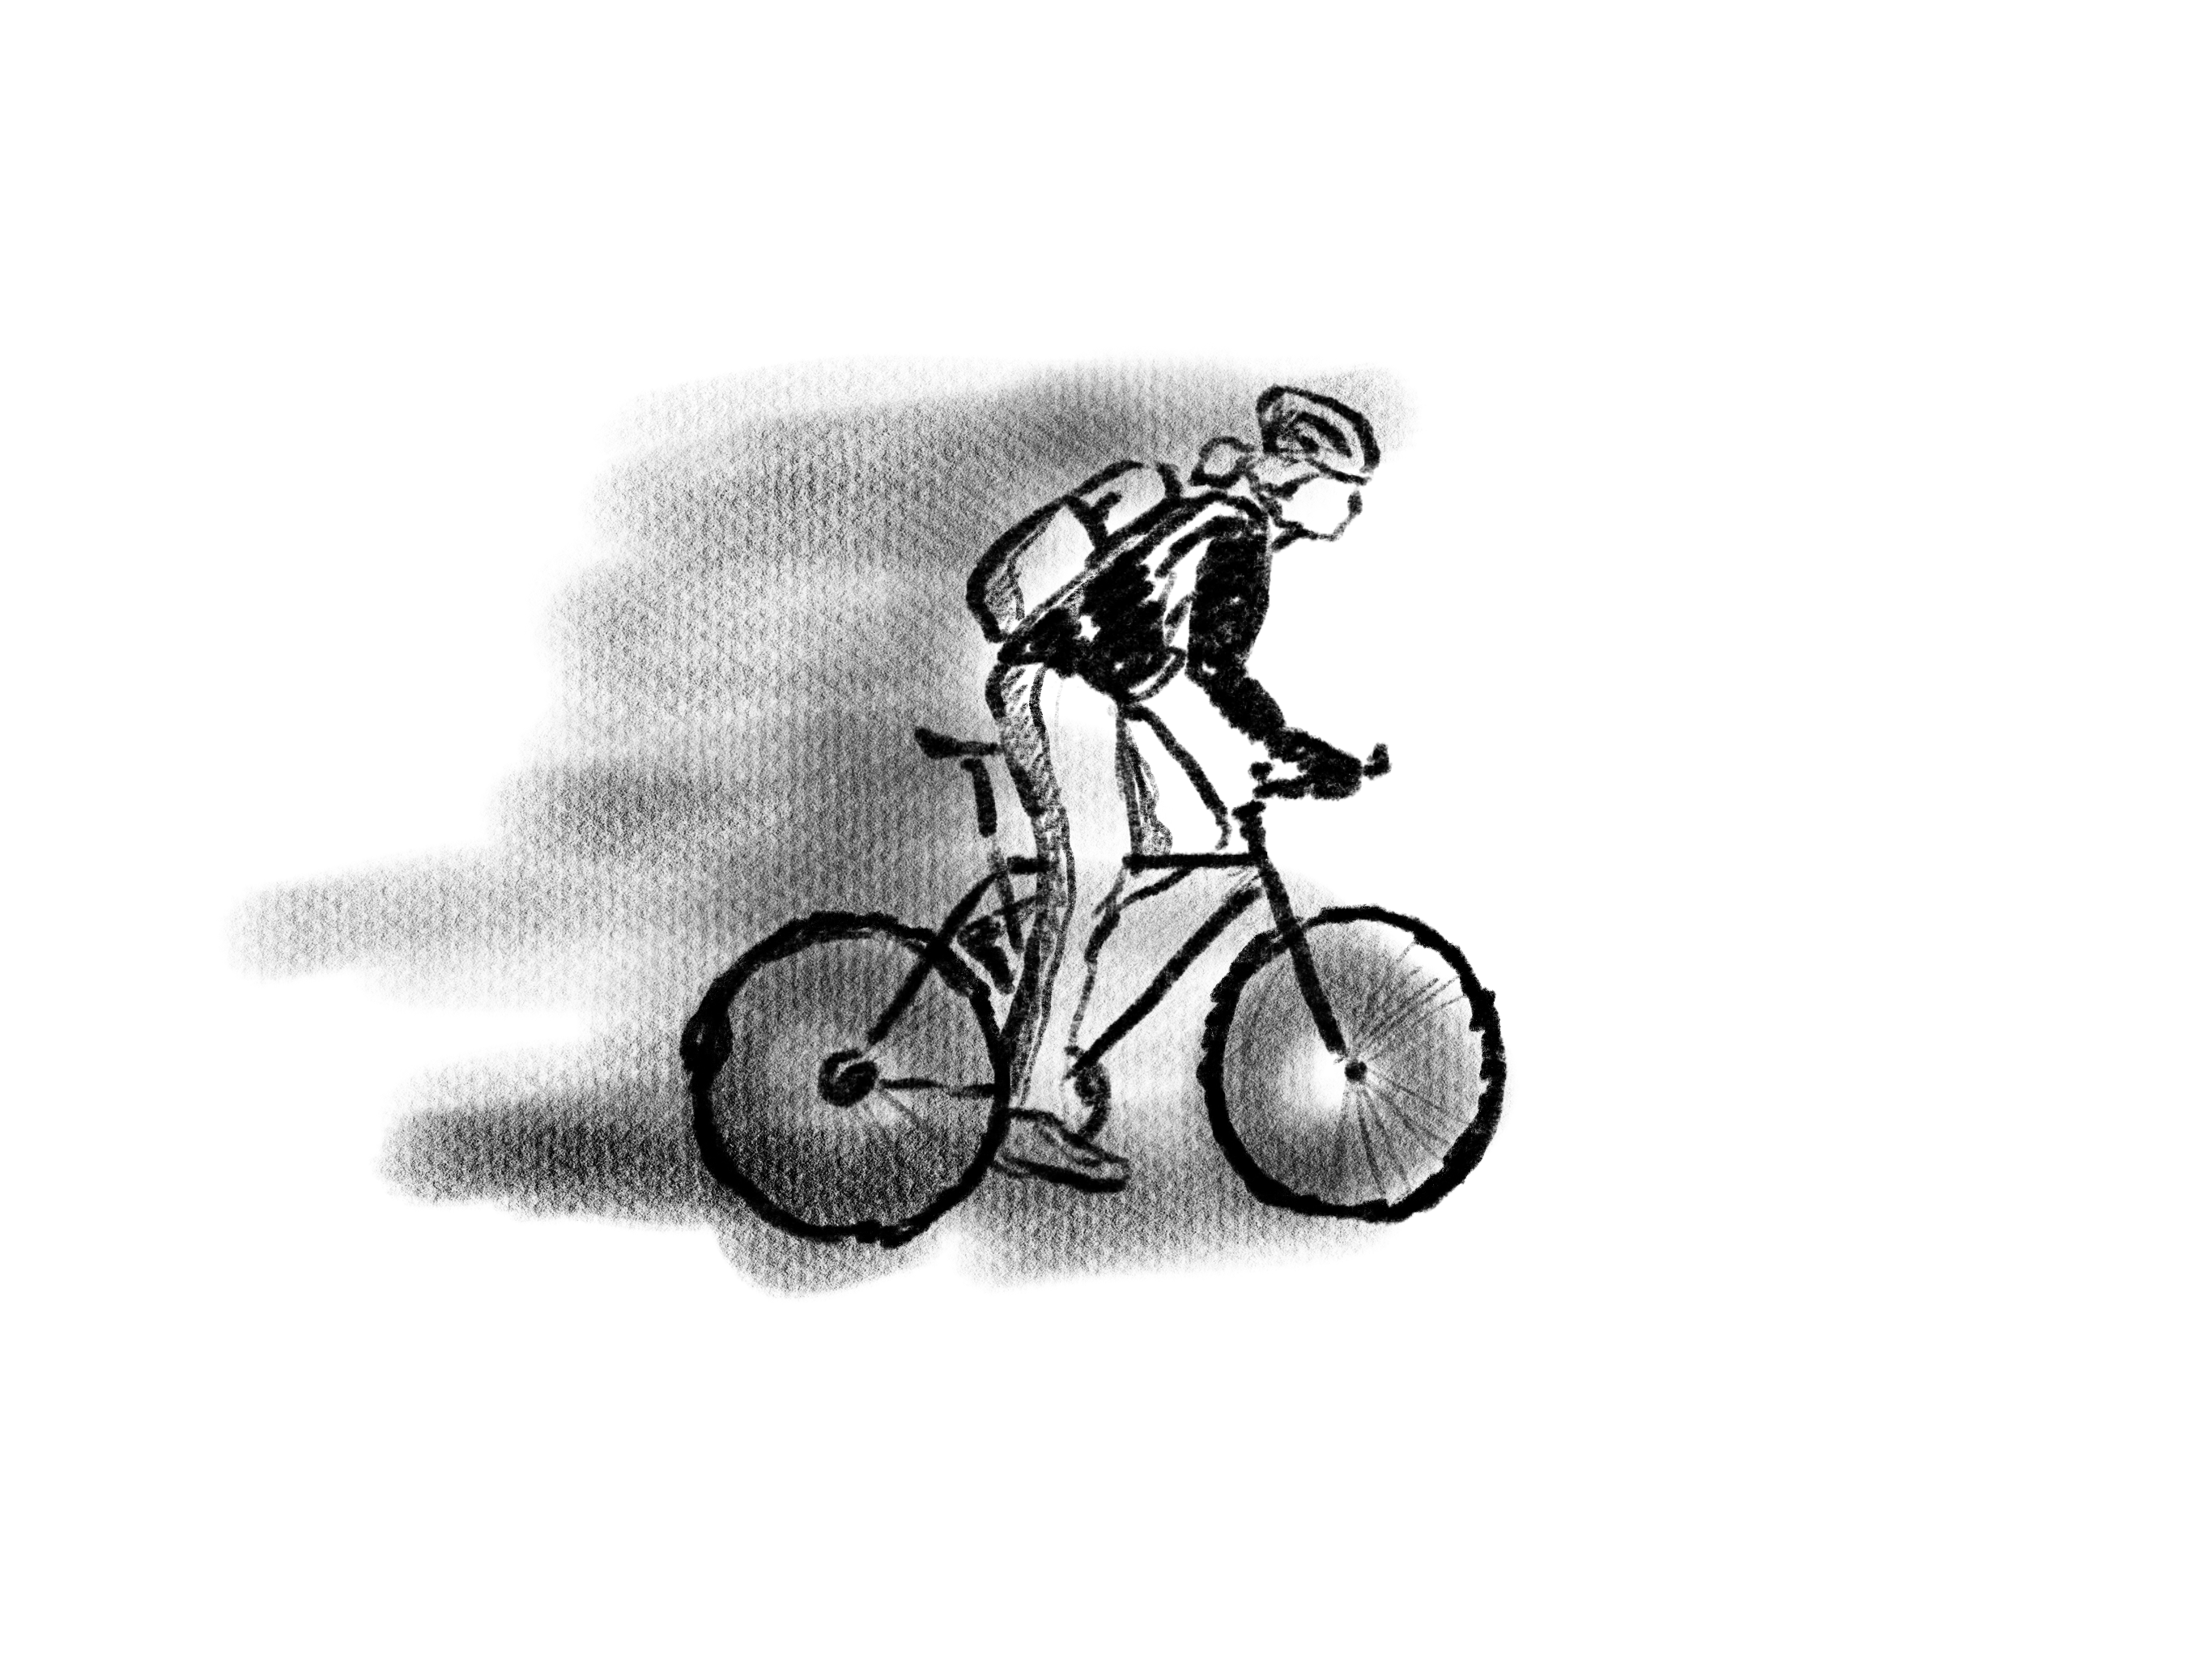 Black and white illustration of a person riding a bike